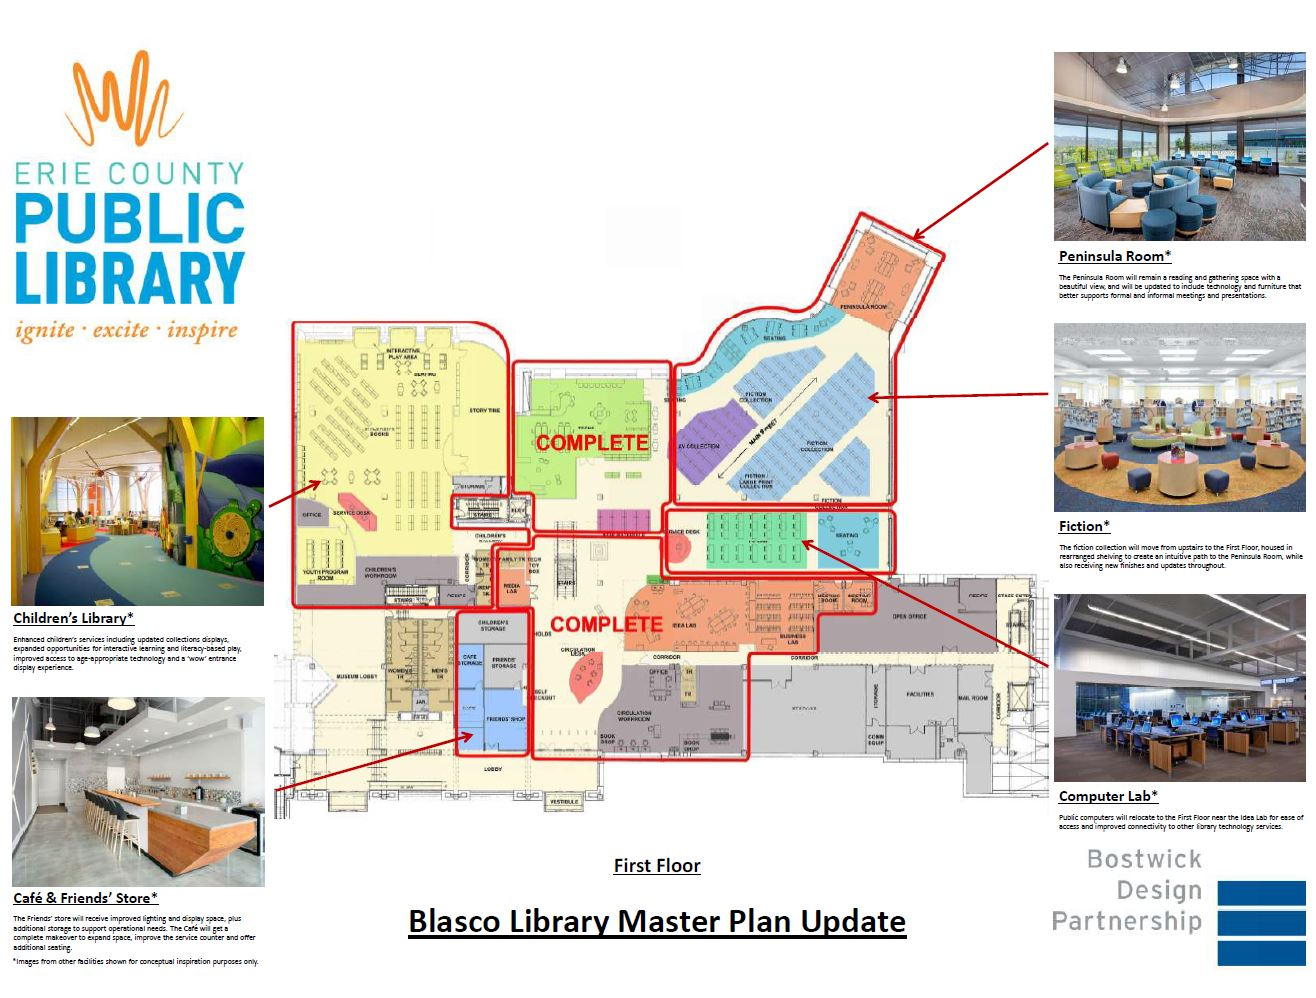 The Erie County Public Library, in partnership with Bostwick Design, has created a four phase plan for the renovation of the Blasco Memorial Library. Built in 1996, the Blasco Library is in need of accessibility, technology, and layout updates to meet the needs of today's Erie. <br><br>Phases I and II were completed in 2017 and 2019 with the renovation and creation of the Idea Lab, downstairs entryway, and Teen Space. Future phases will address the Children's Library, remaining downstairs areas, lobby, and upstairs.<br><br>Please review the phase plan drawings and let us know what you think!